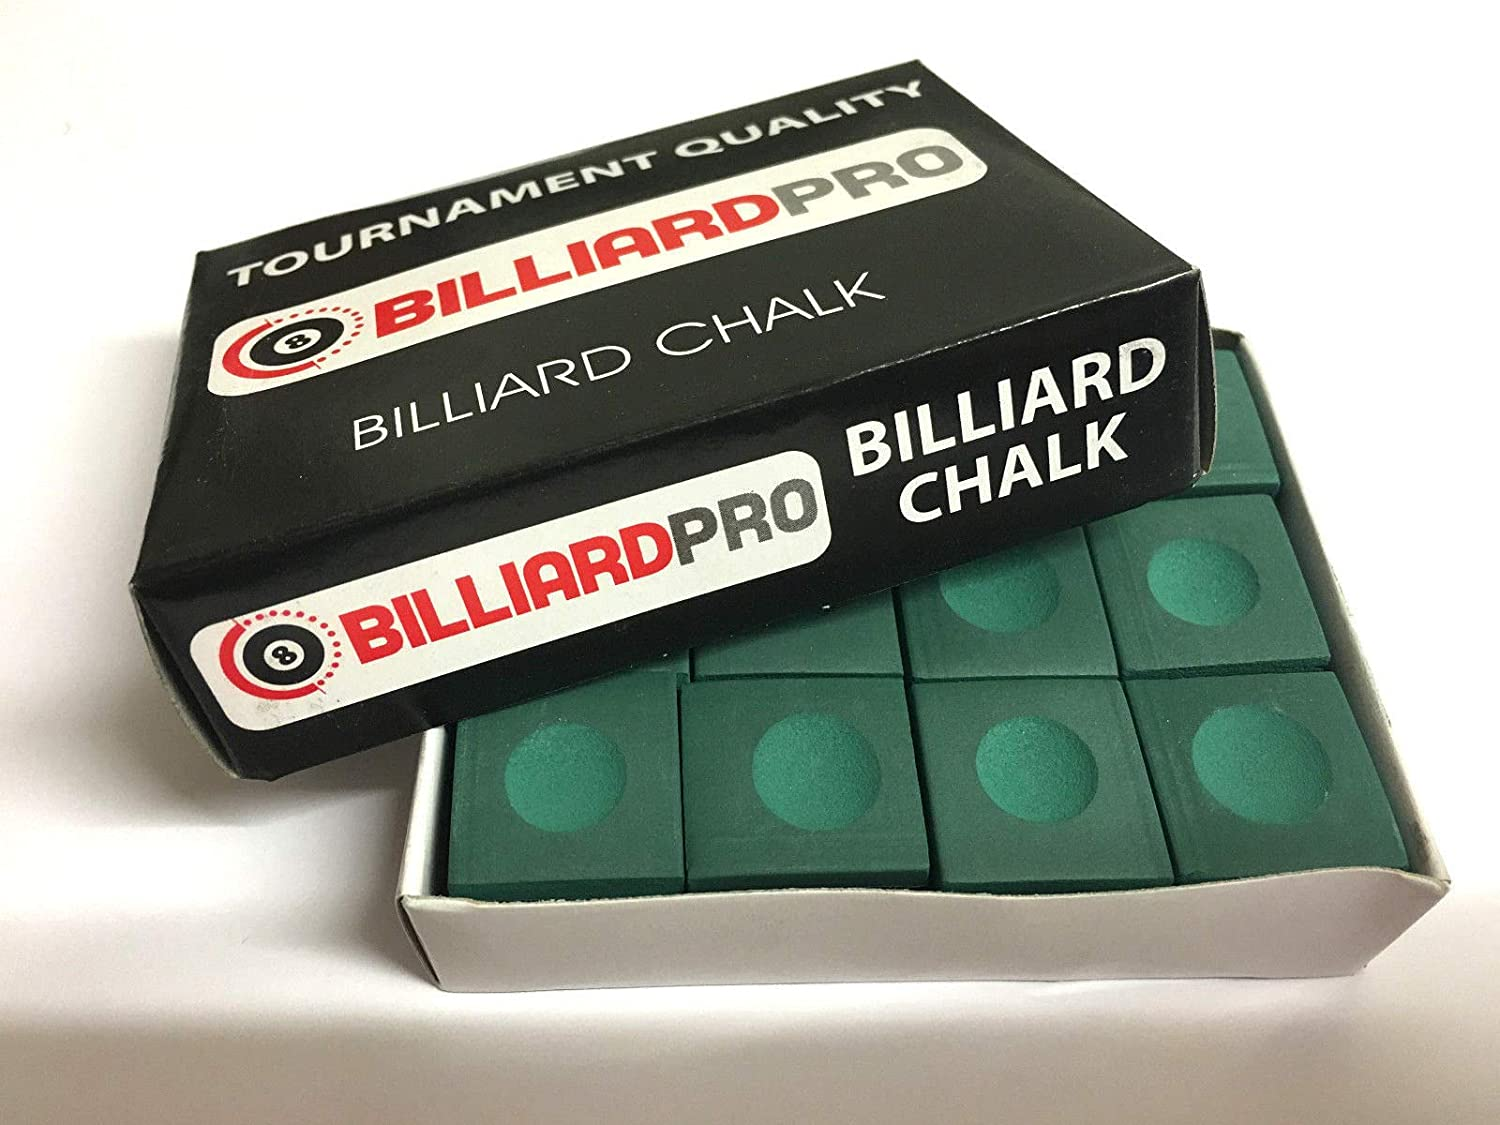 12 Pieces 1 BOX of RED Billiard Pro Snooker or Pool Cue Tips Chalks